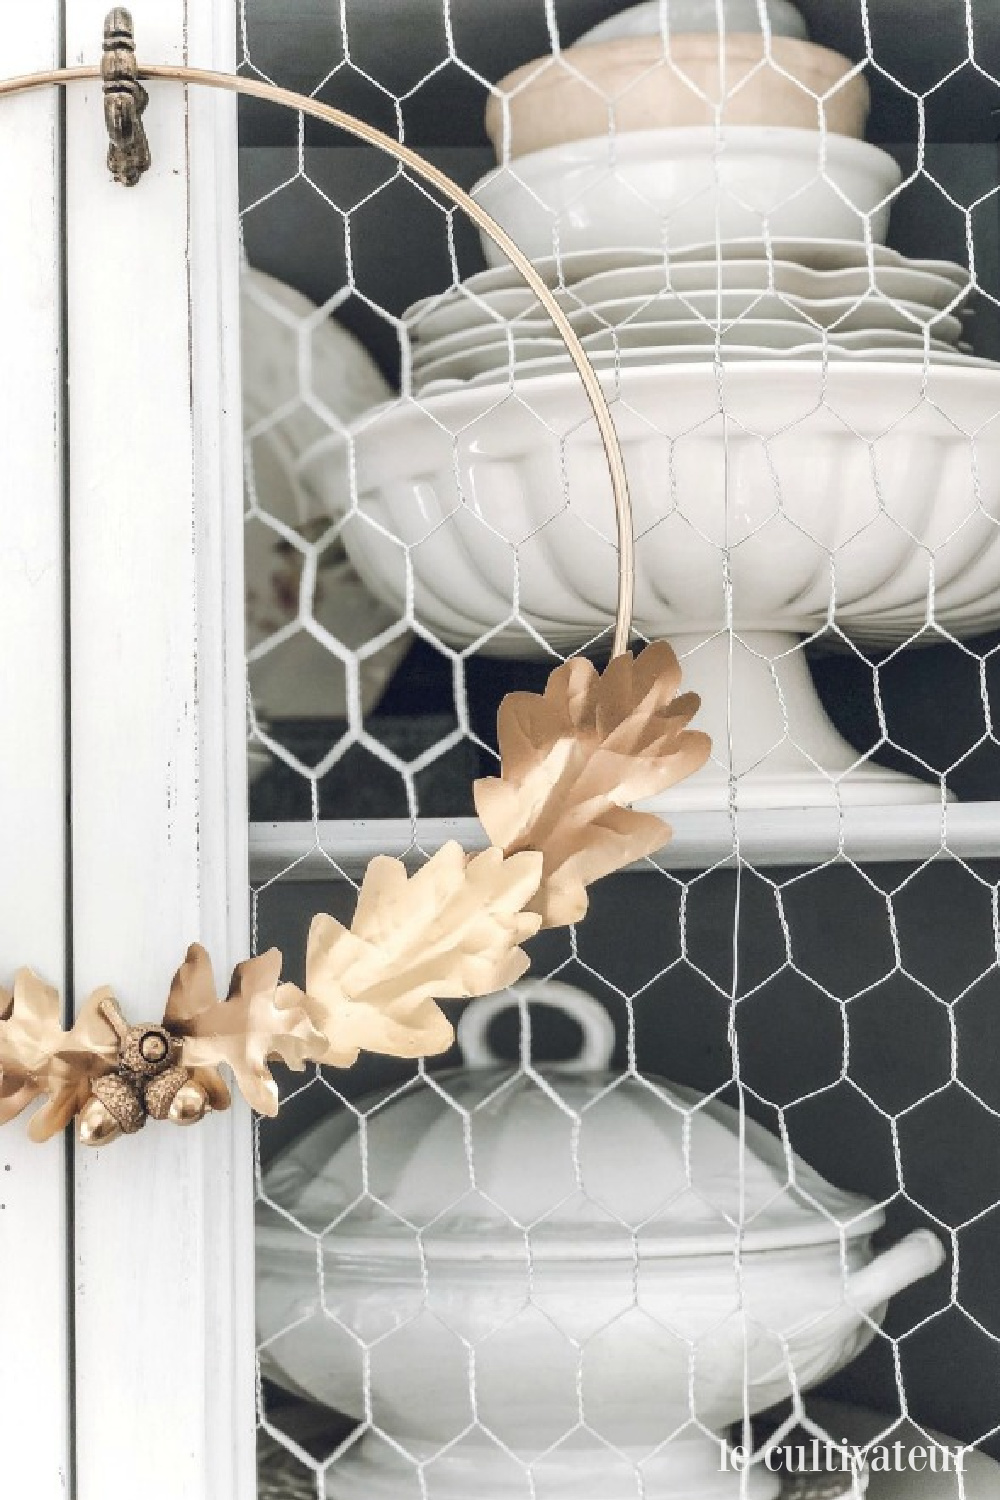 French country fall decor with white ironstone in a country vintage cabinet with chickenwire - Le Cultivateur. #falldecor #frenchcountry #ironstone #chickenwire